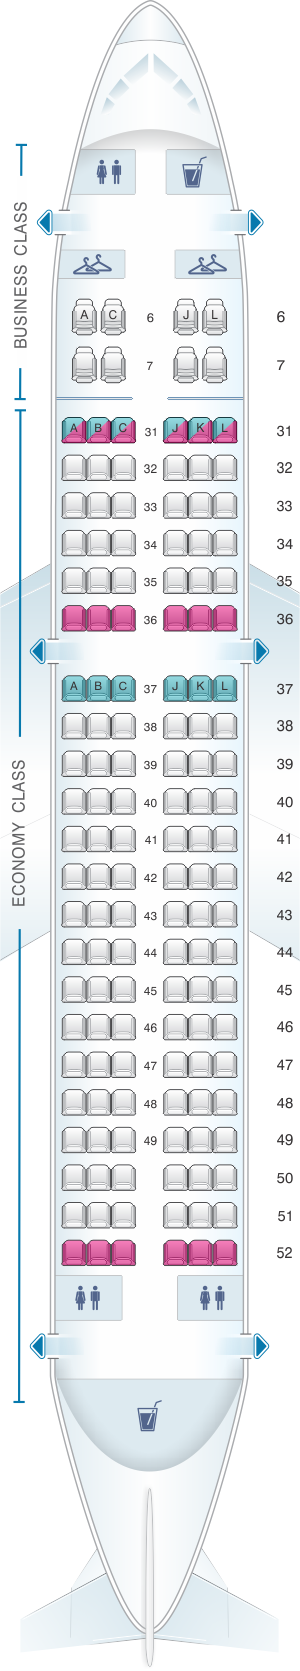 Seat map for China Eastern Airlines Airbus A319 100